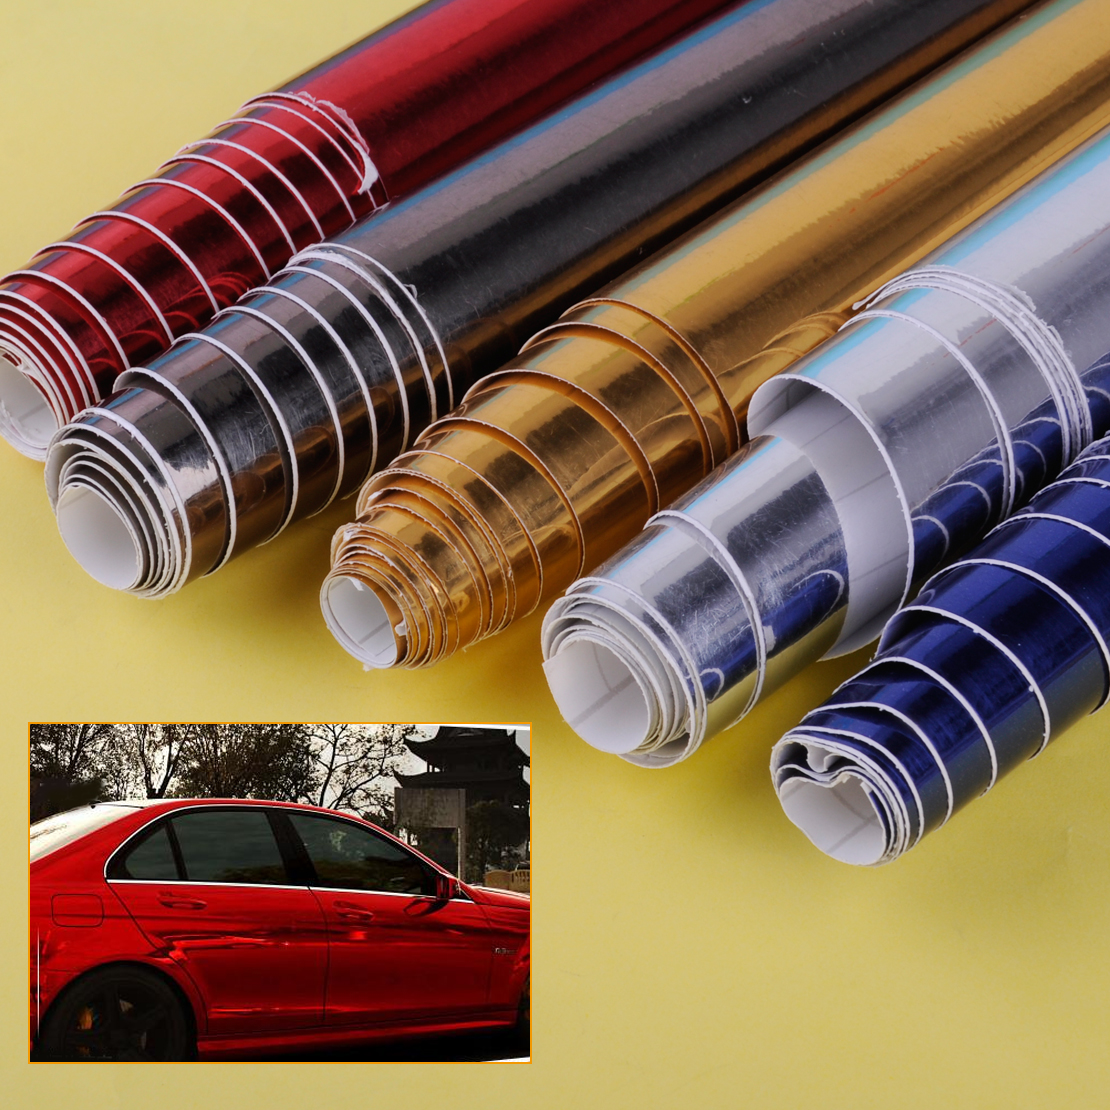 DWCX Car Styling Auto Glossy Chrome Mirror Vinyl Wrap Film Roll Sheet Sticker 150cmx15cm Fit for VW Audi BMW Honda Hyundai Ford car floor mats covers free shipping 5d for toyota honda for nissan hyundai buick for ford audi benz for bmw car etc styling